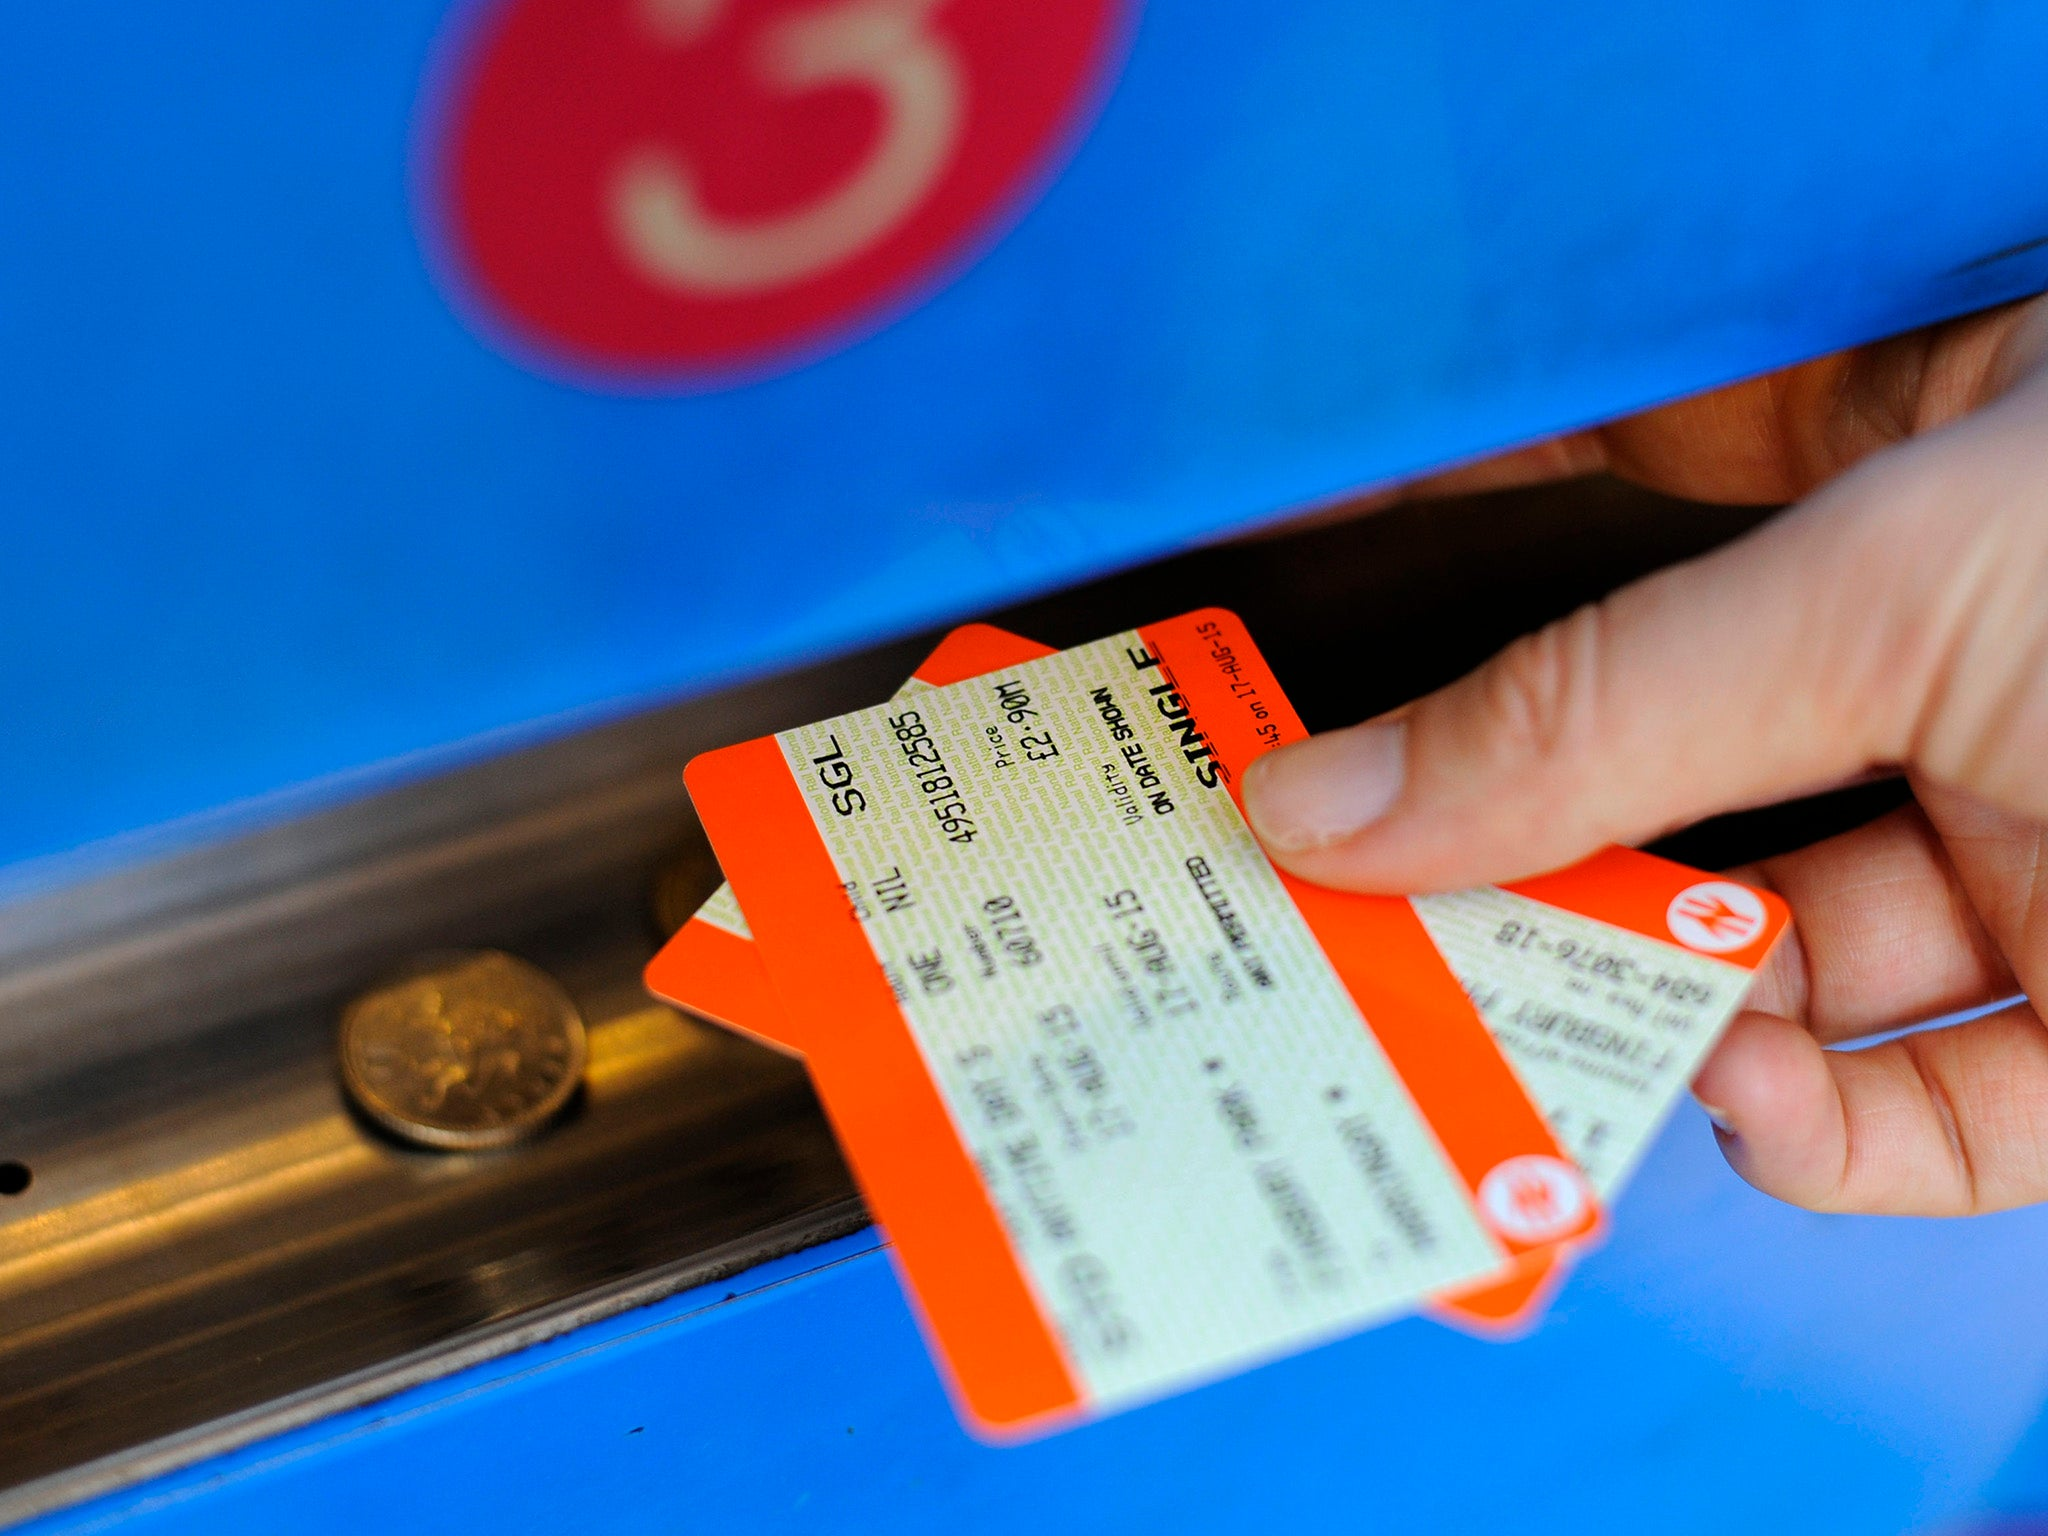 How to hand over a train ticket purchased through 24